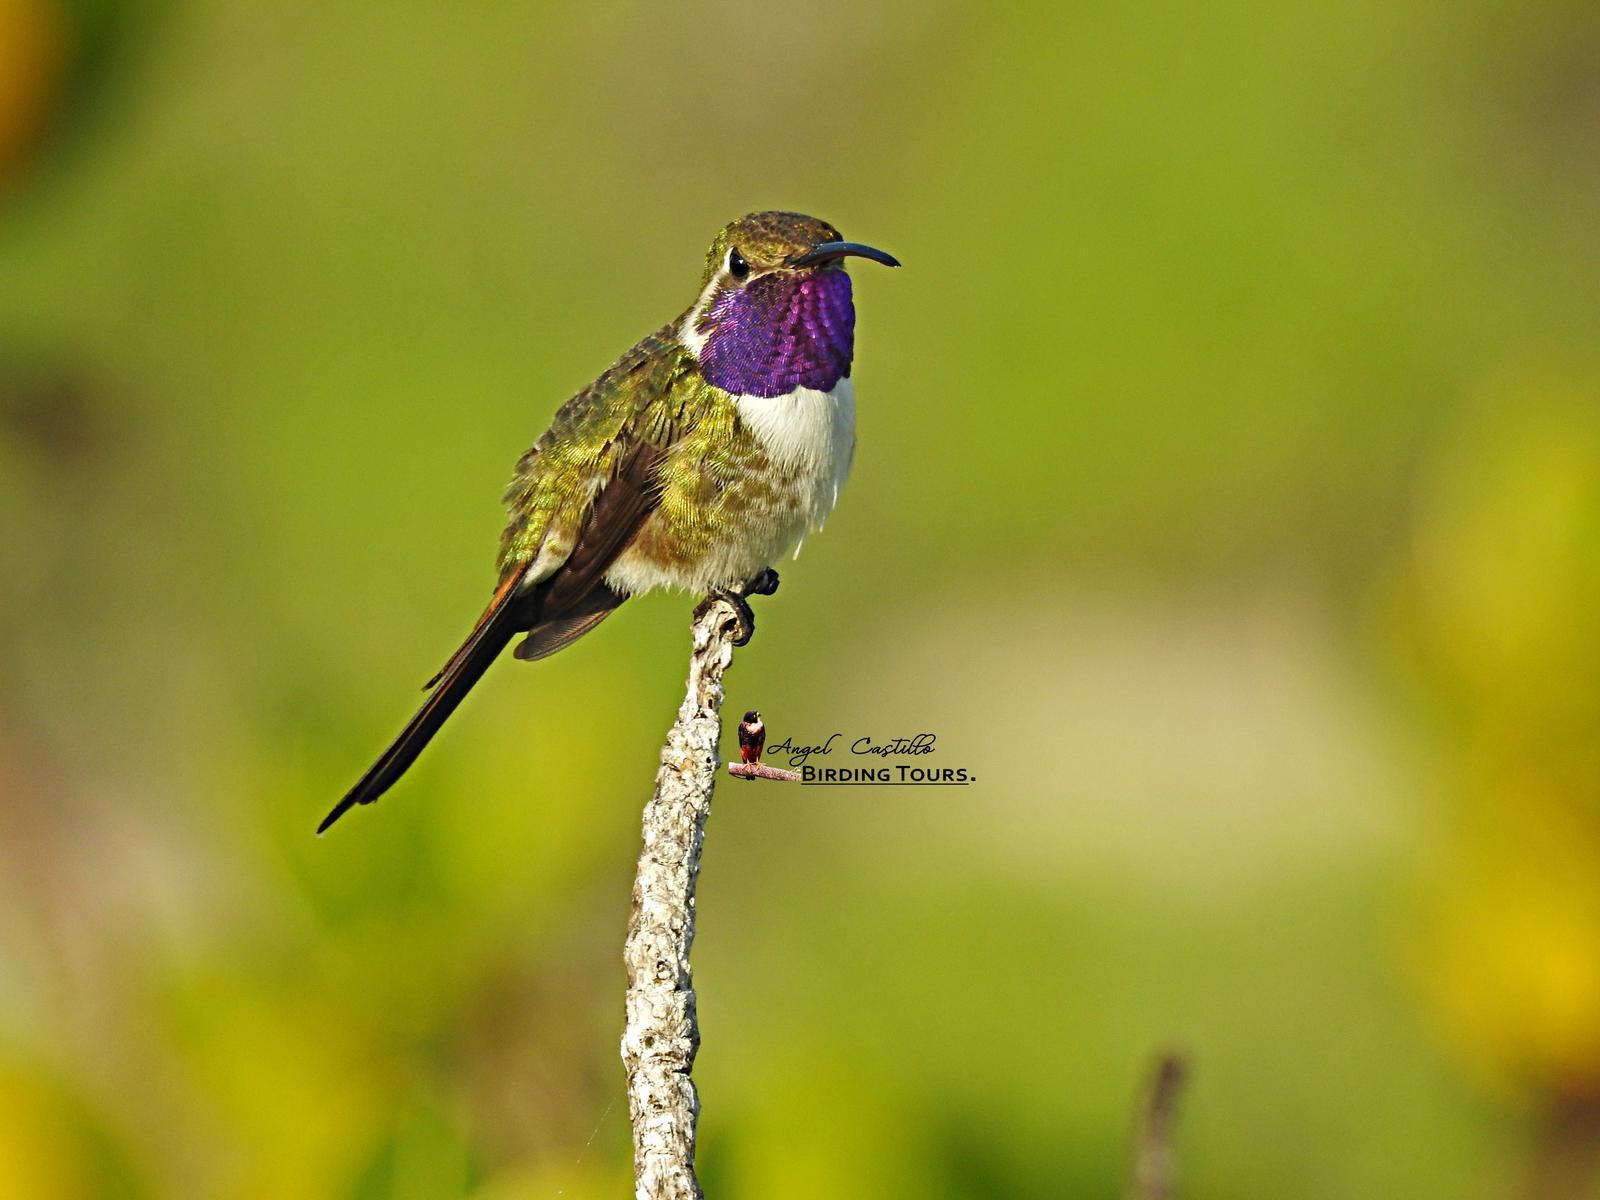 Mexican Sheartail Photo by Castillo Cime